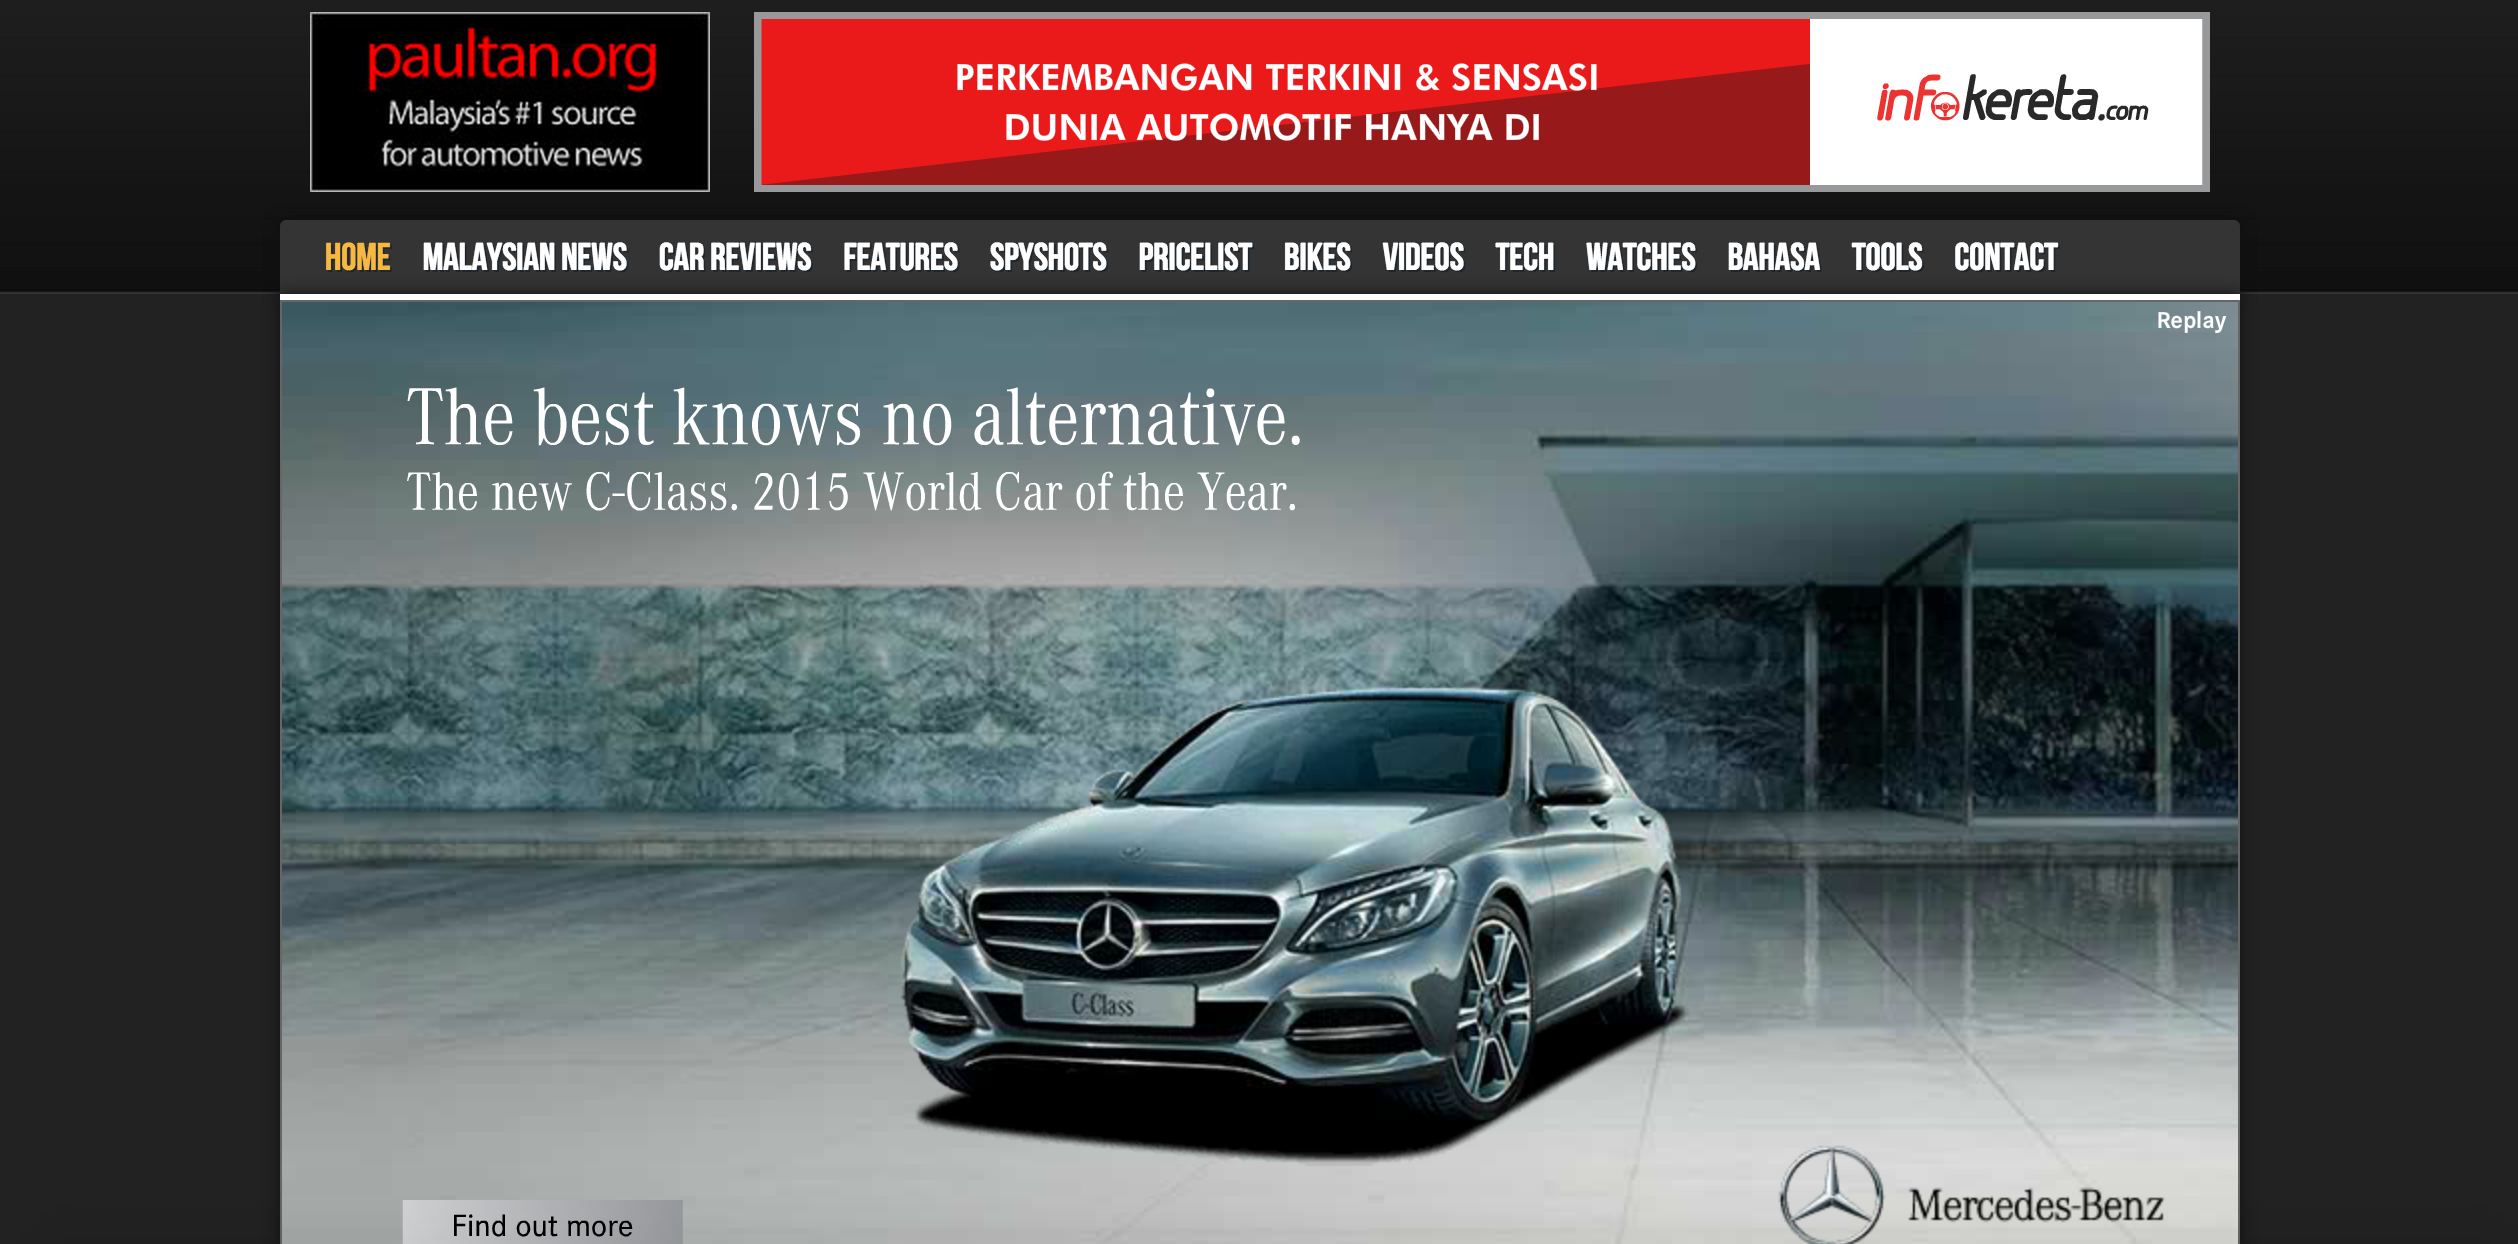 Car_News_and_Reviews_in_Malaysia_-_Paul_Tan_s_Automotive_News